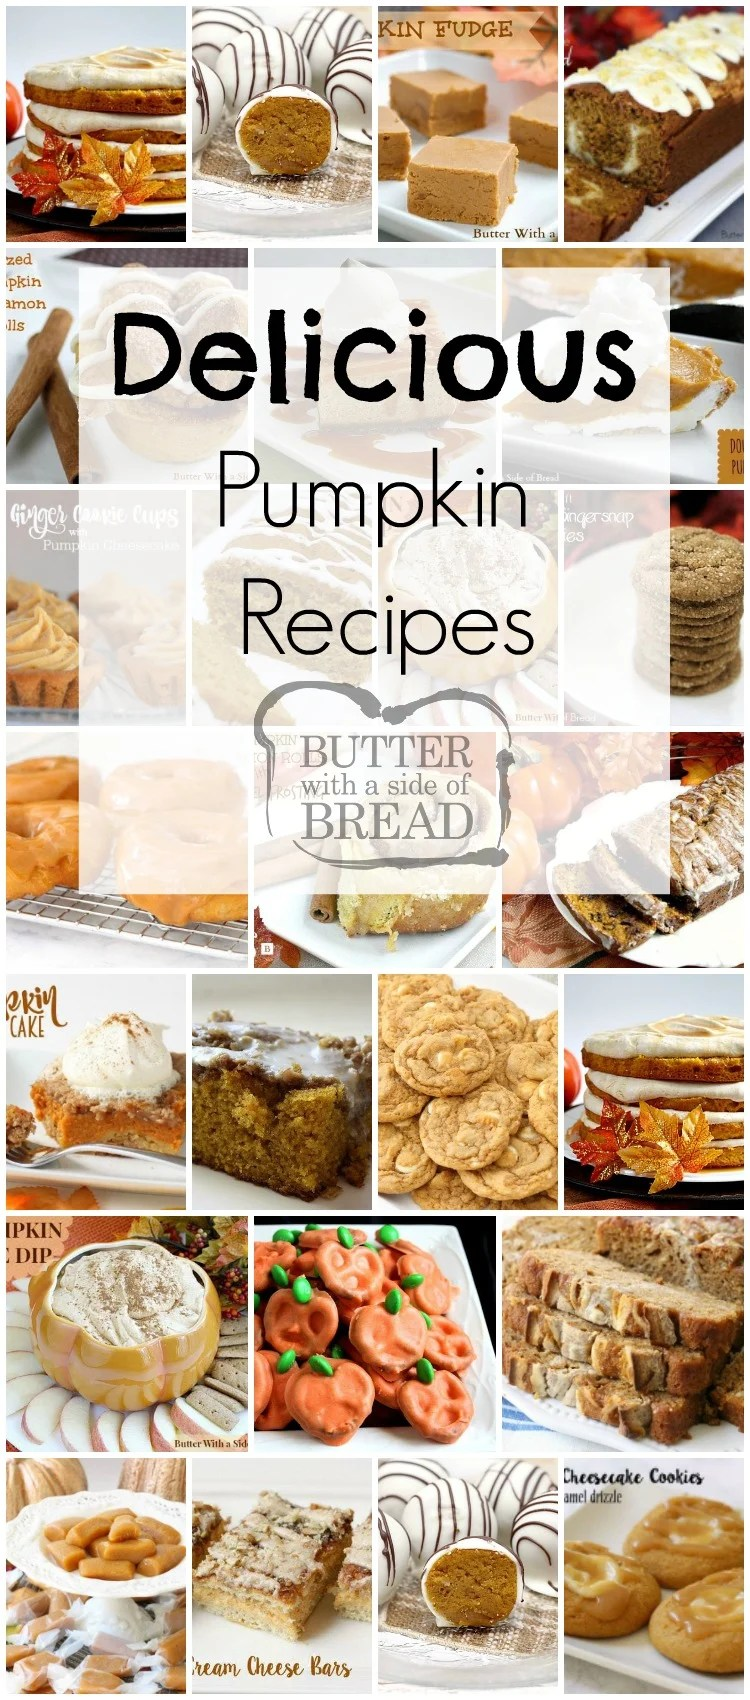 Delicious Pumpkin Recipes perfect for Fall or any time of the year! Breads, cookies, candy cakes and more; everyone loves these tasty, festive pumpkin recipes.